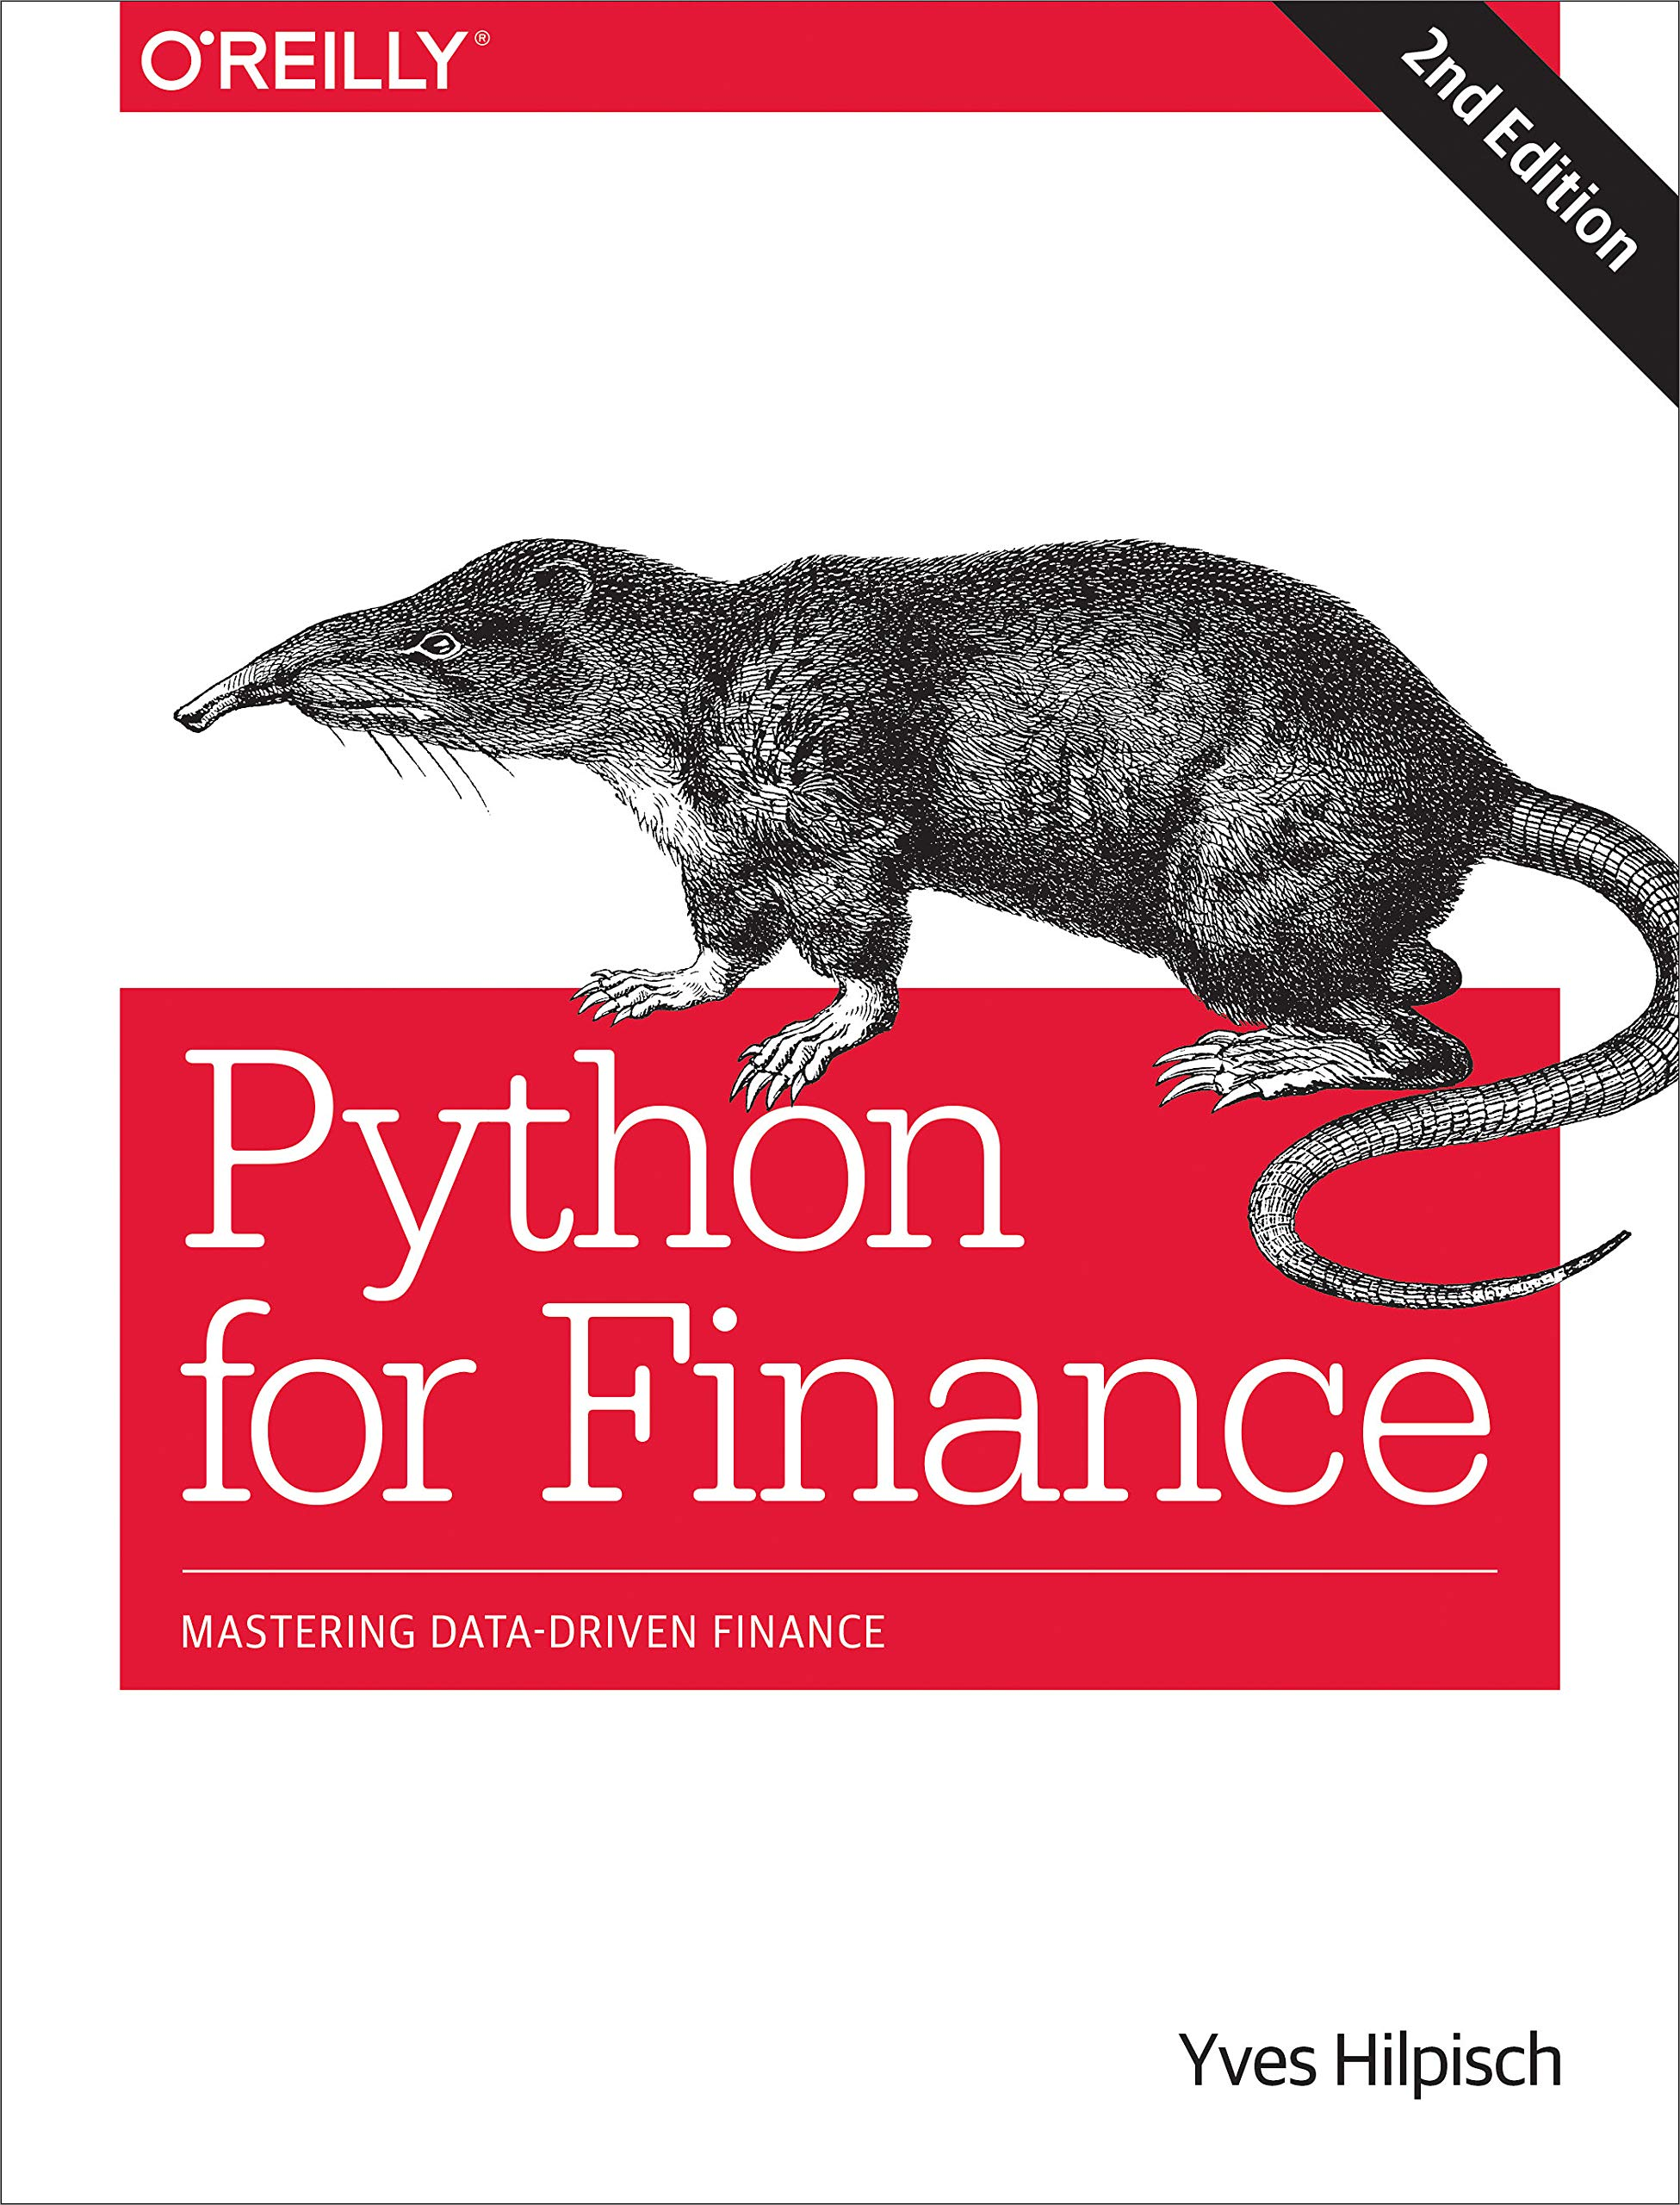 Python for Finance: Mastering Data-Driven Finance by O'Reilly Media